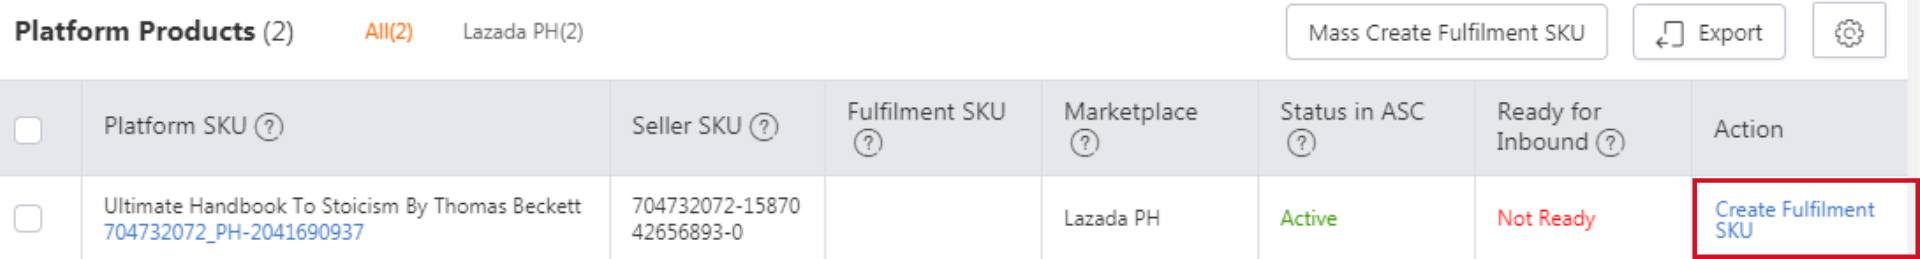 Fulfillment by Lazada - An Overview of Lazada's Fulfillment Service by Split Dragon